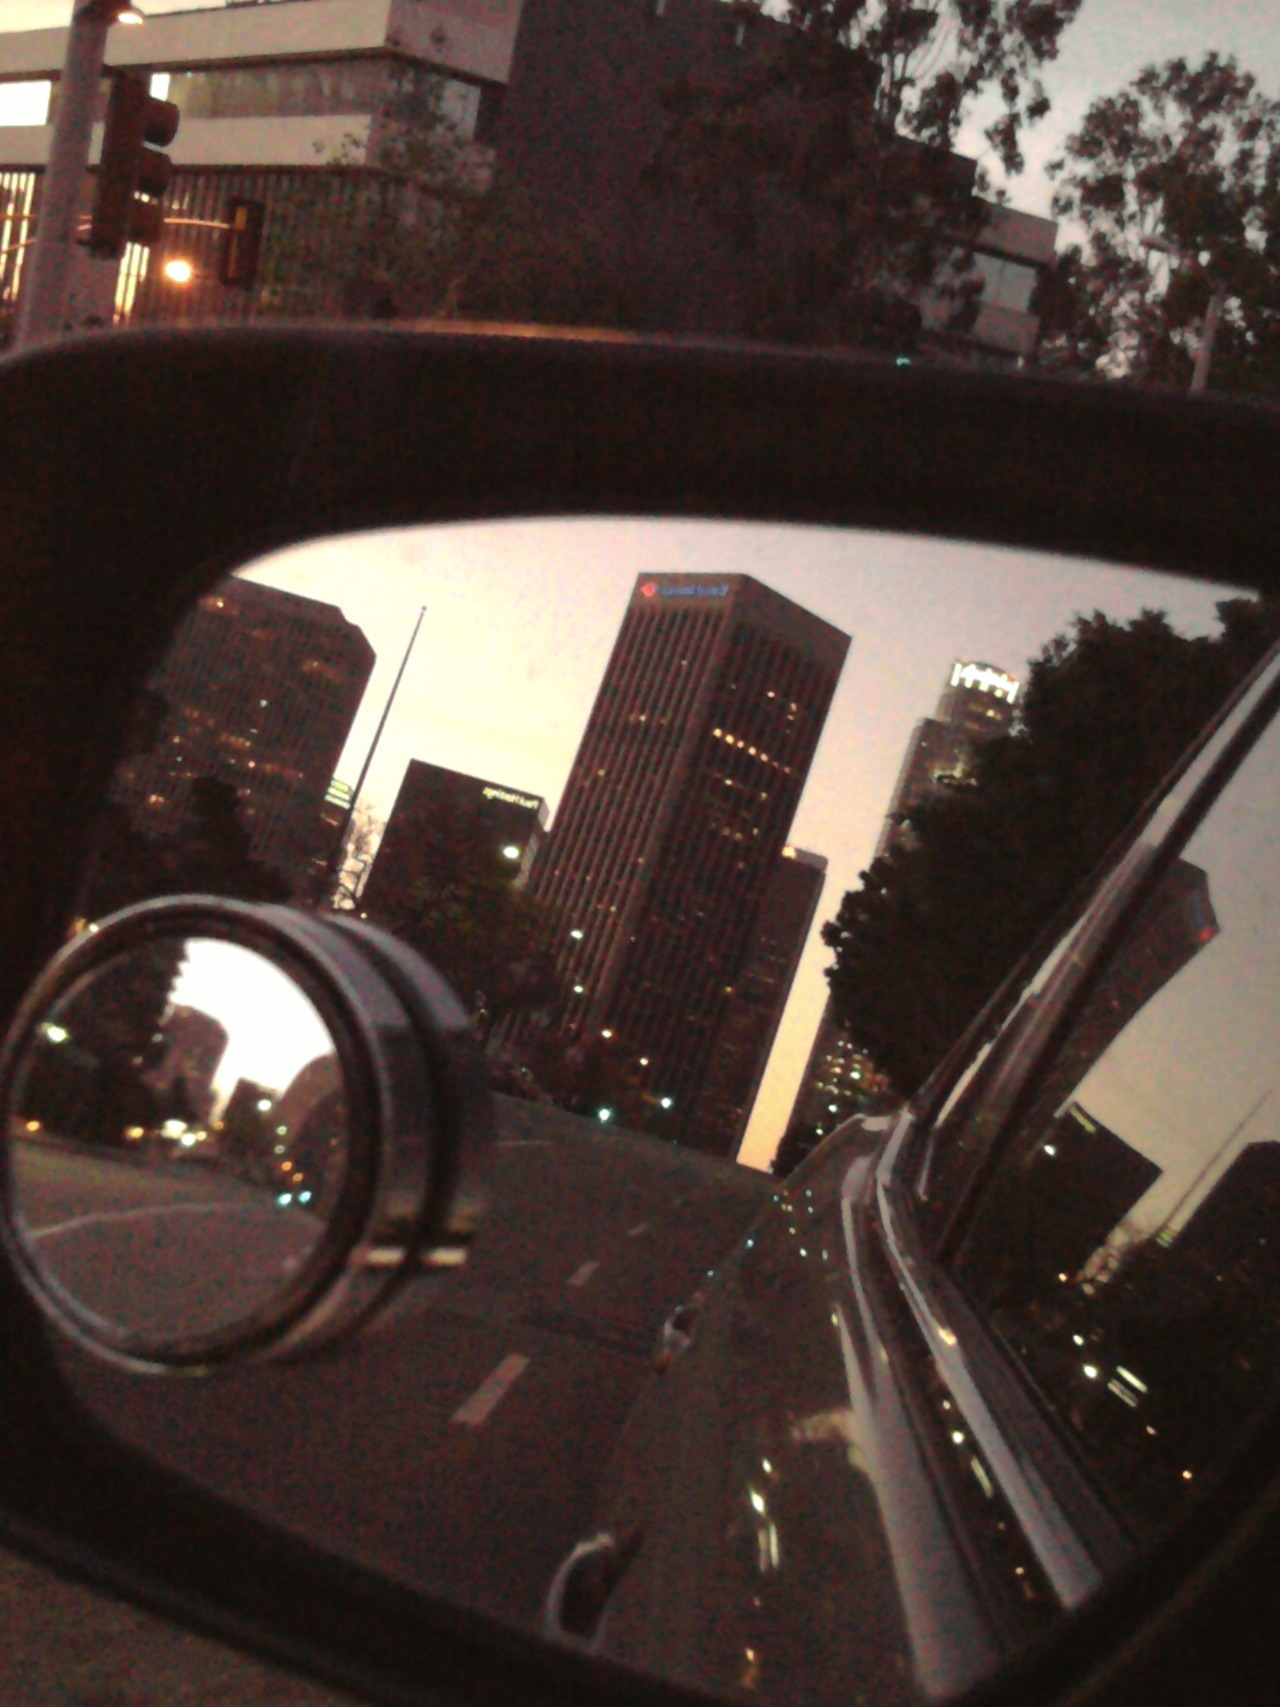 Reflections of Downtown Los Angeles through a side-mirror. Remembering April 29, 1992. #LARiots